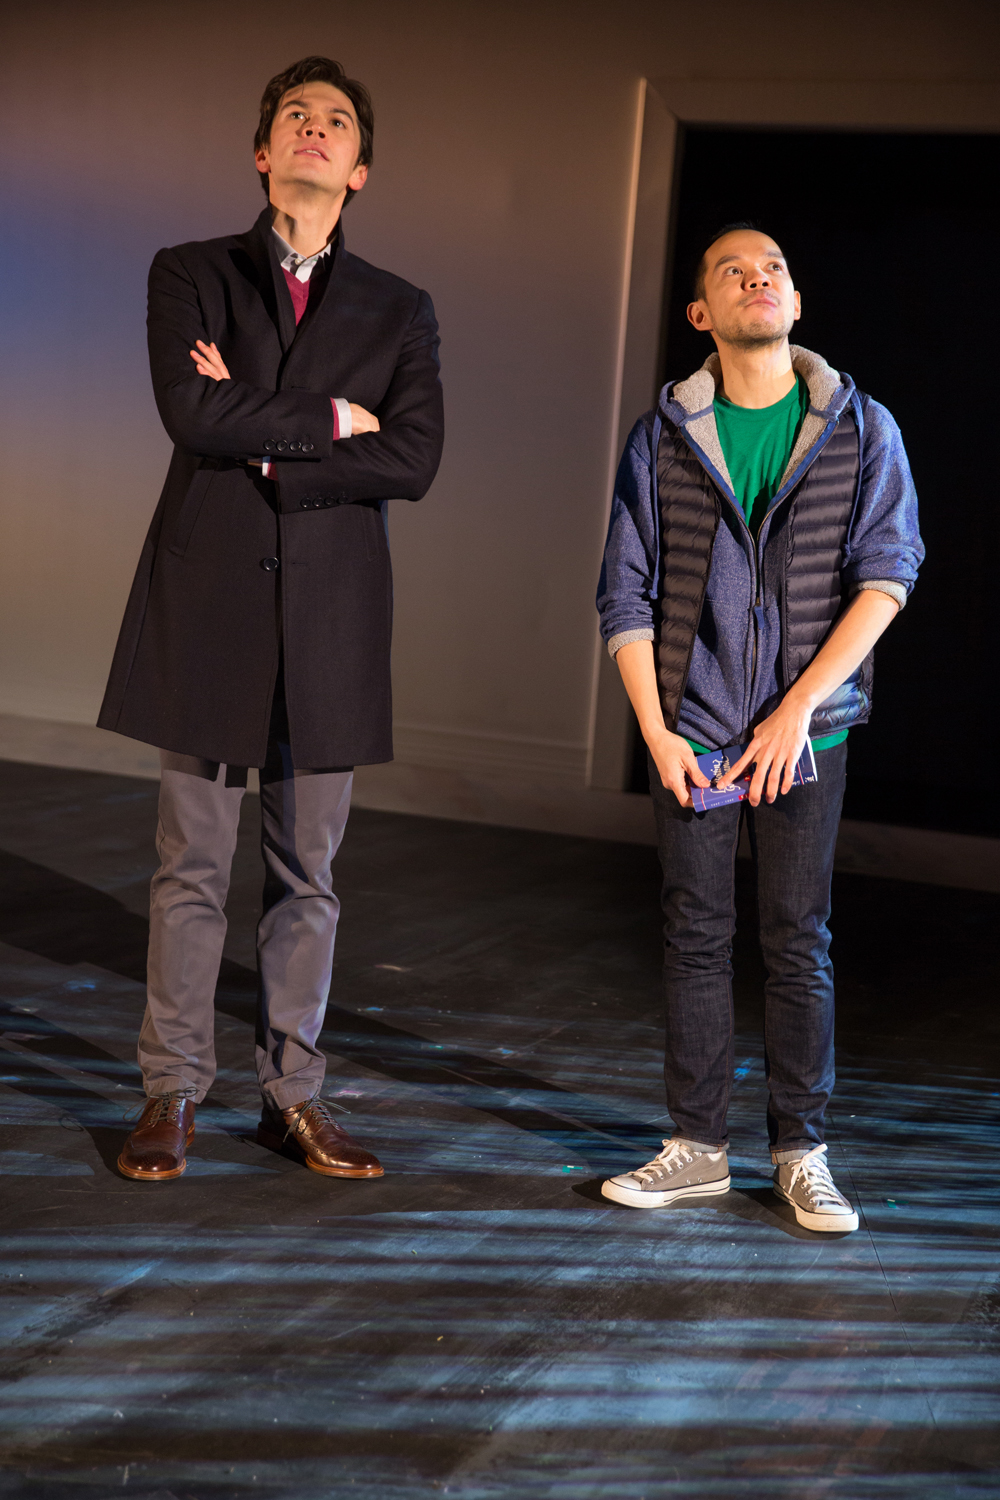 Devin Norik as Dash and Jon Norman Schneider as Claude.